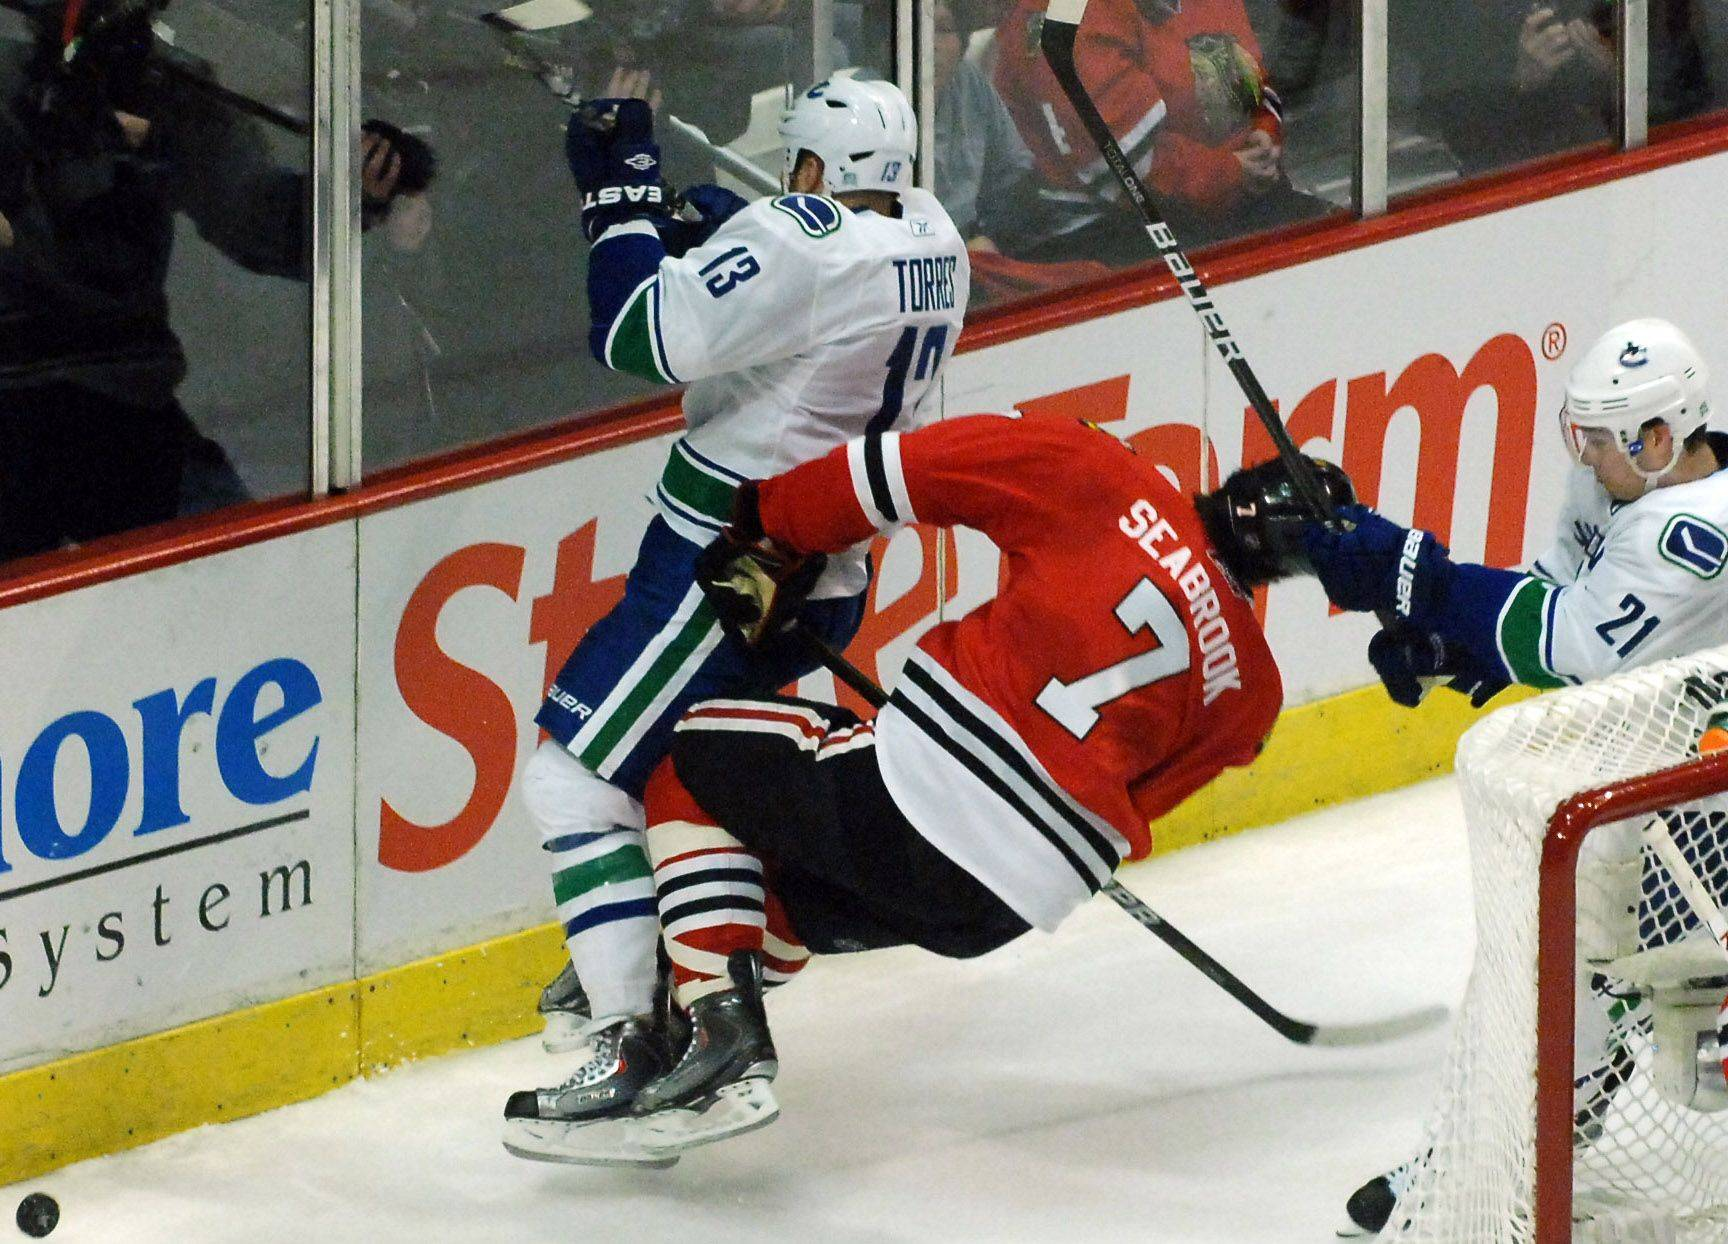 Vancouver Canucks left wing Raffi Torres gets a two-minute penalty for hitting Chicago Blackhawks defenseman Brent Seabrook.